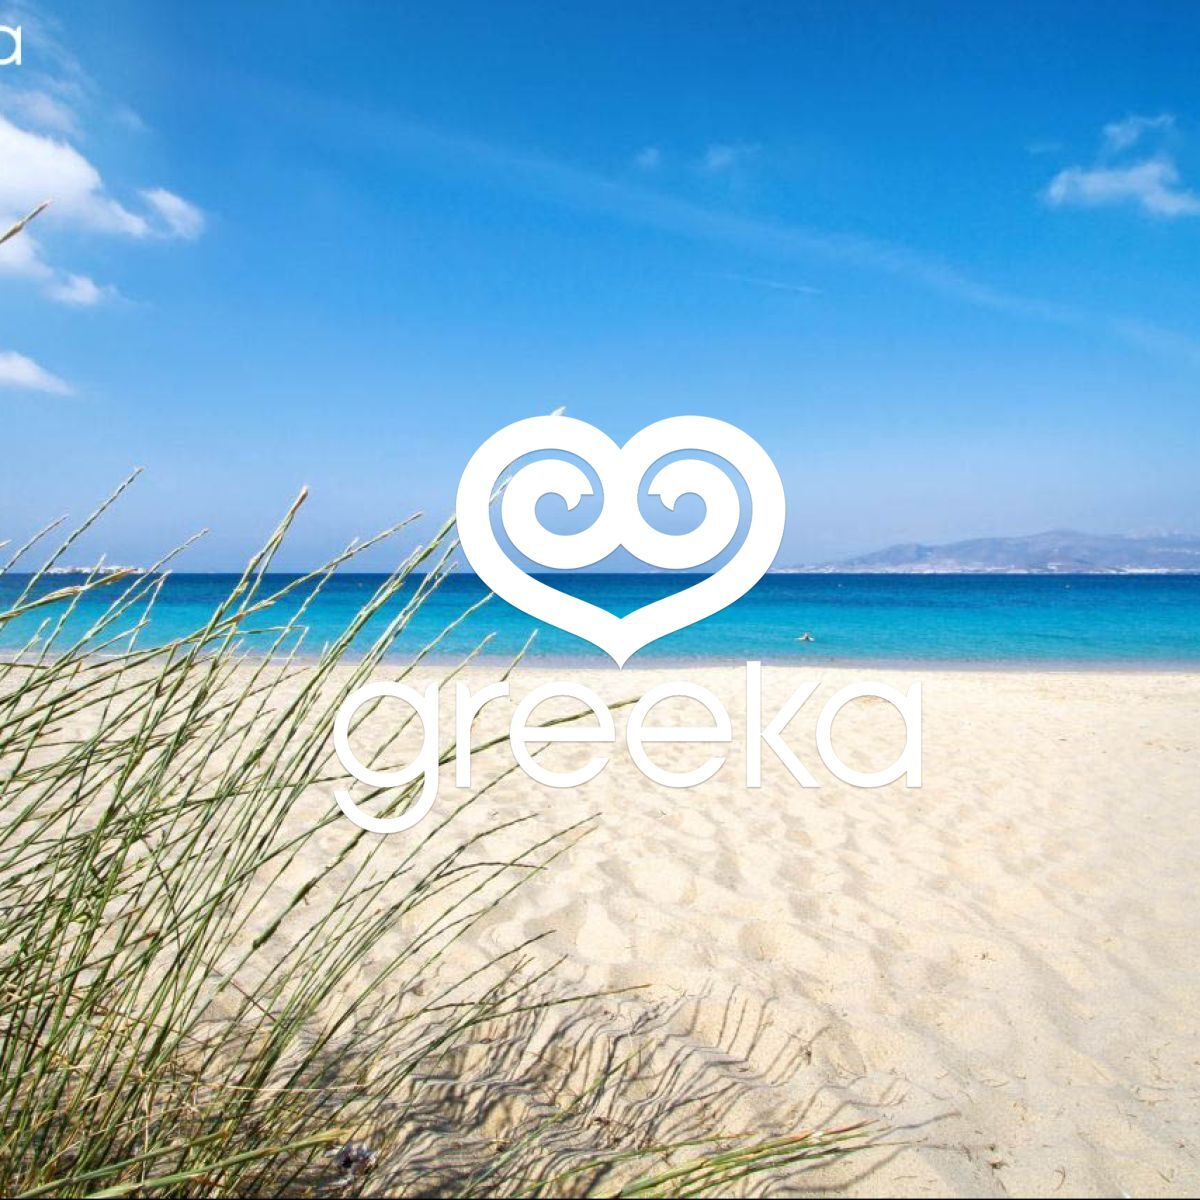 Best Beaches in Greece: Guide and photos - Greeka com